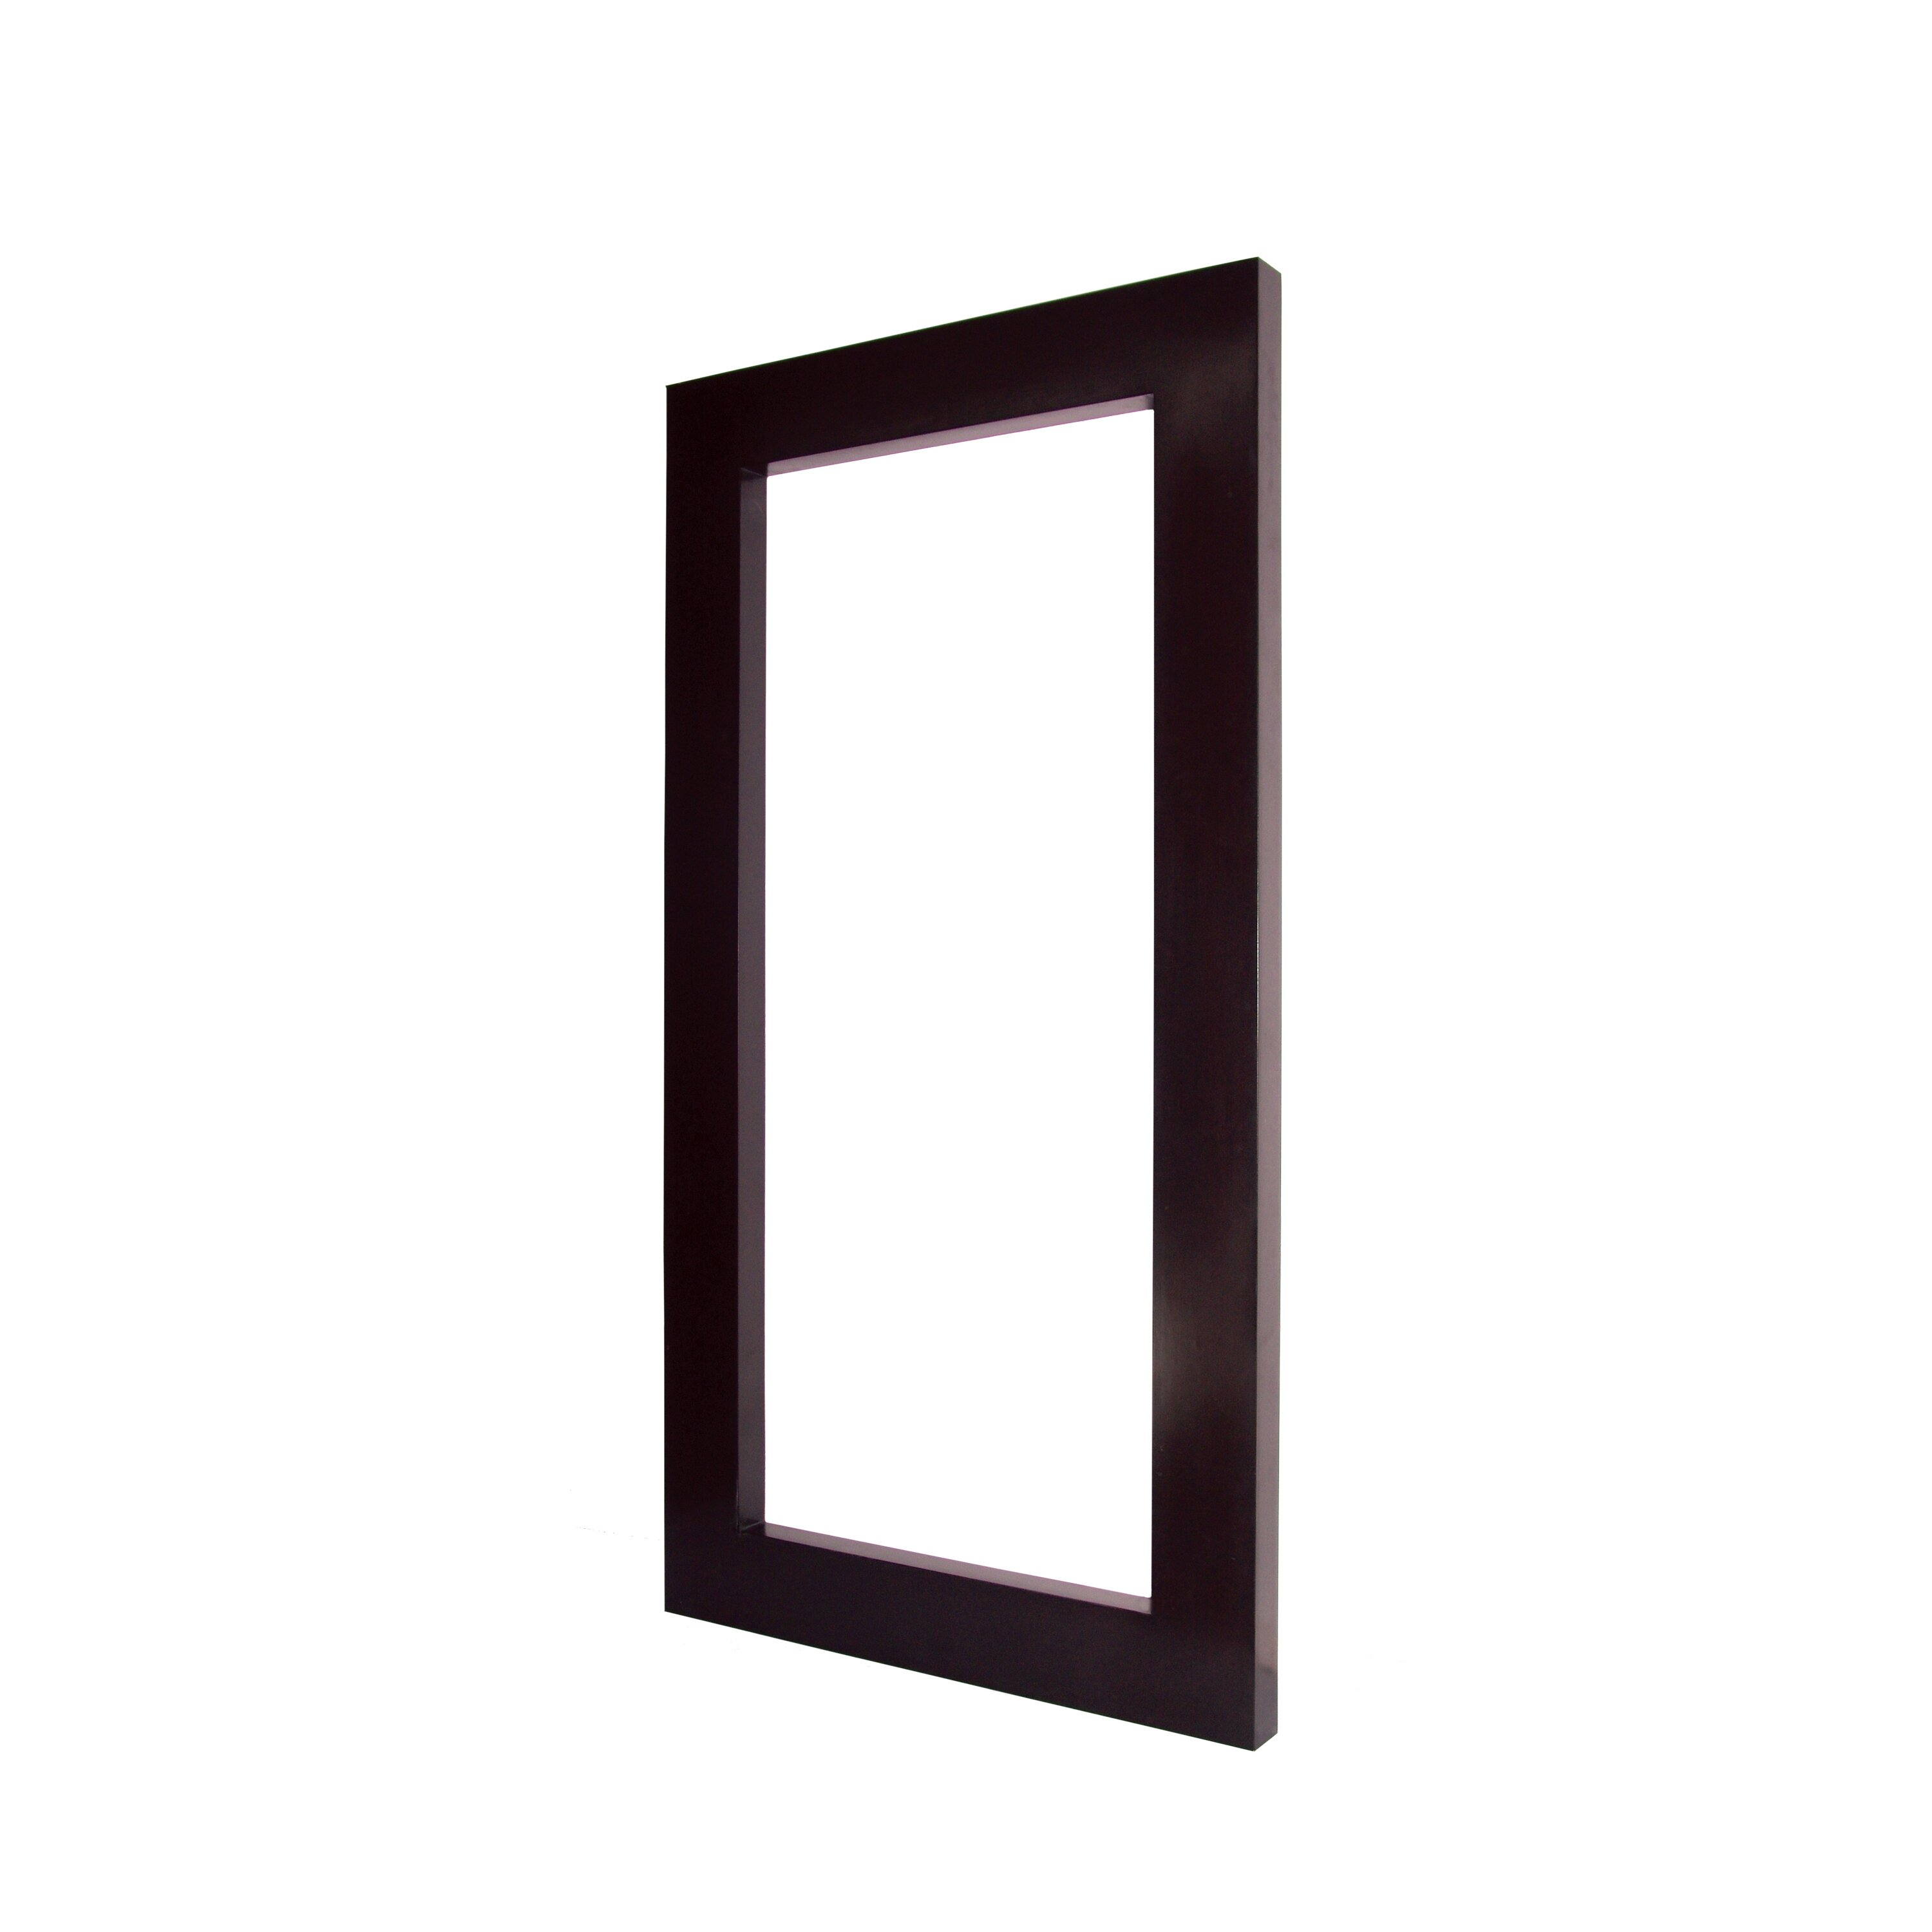 Majestic mirror large rectangular dark brown contemporary for Large contemporary mirrors